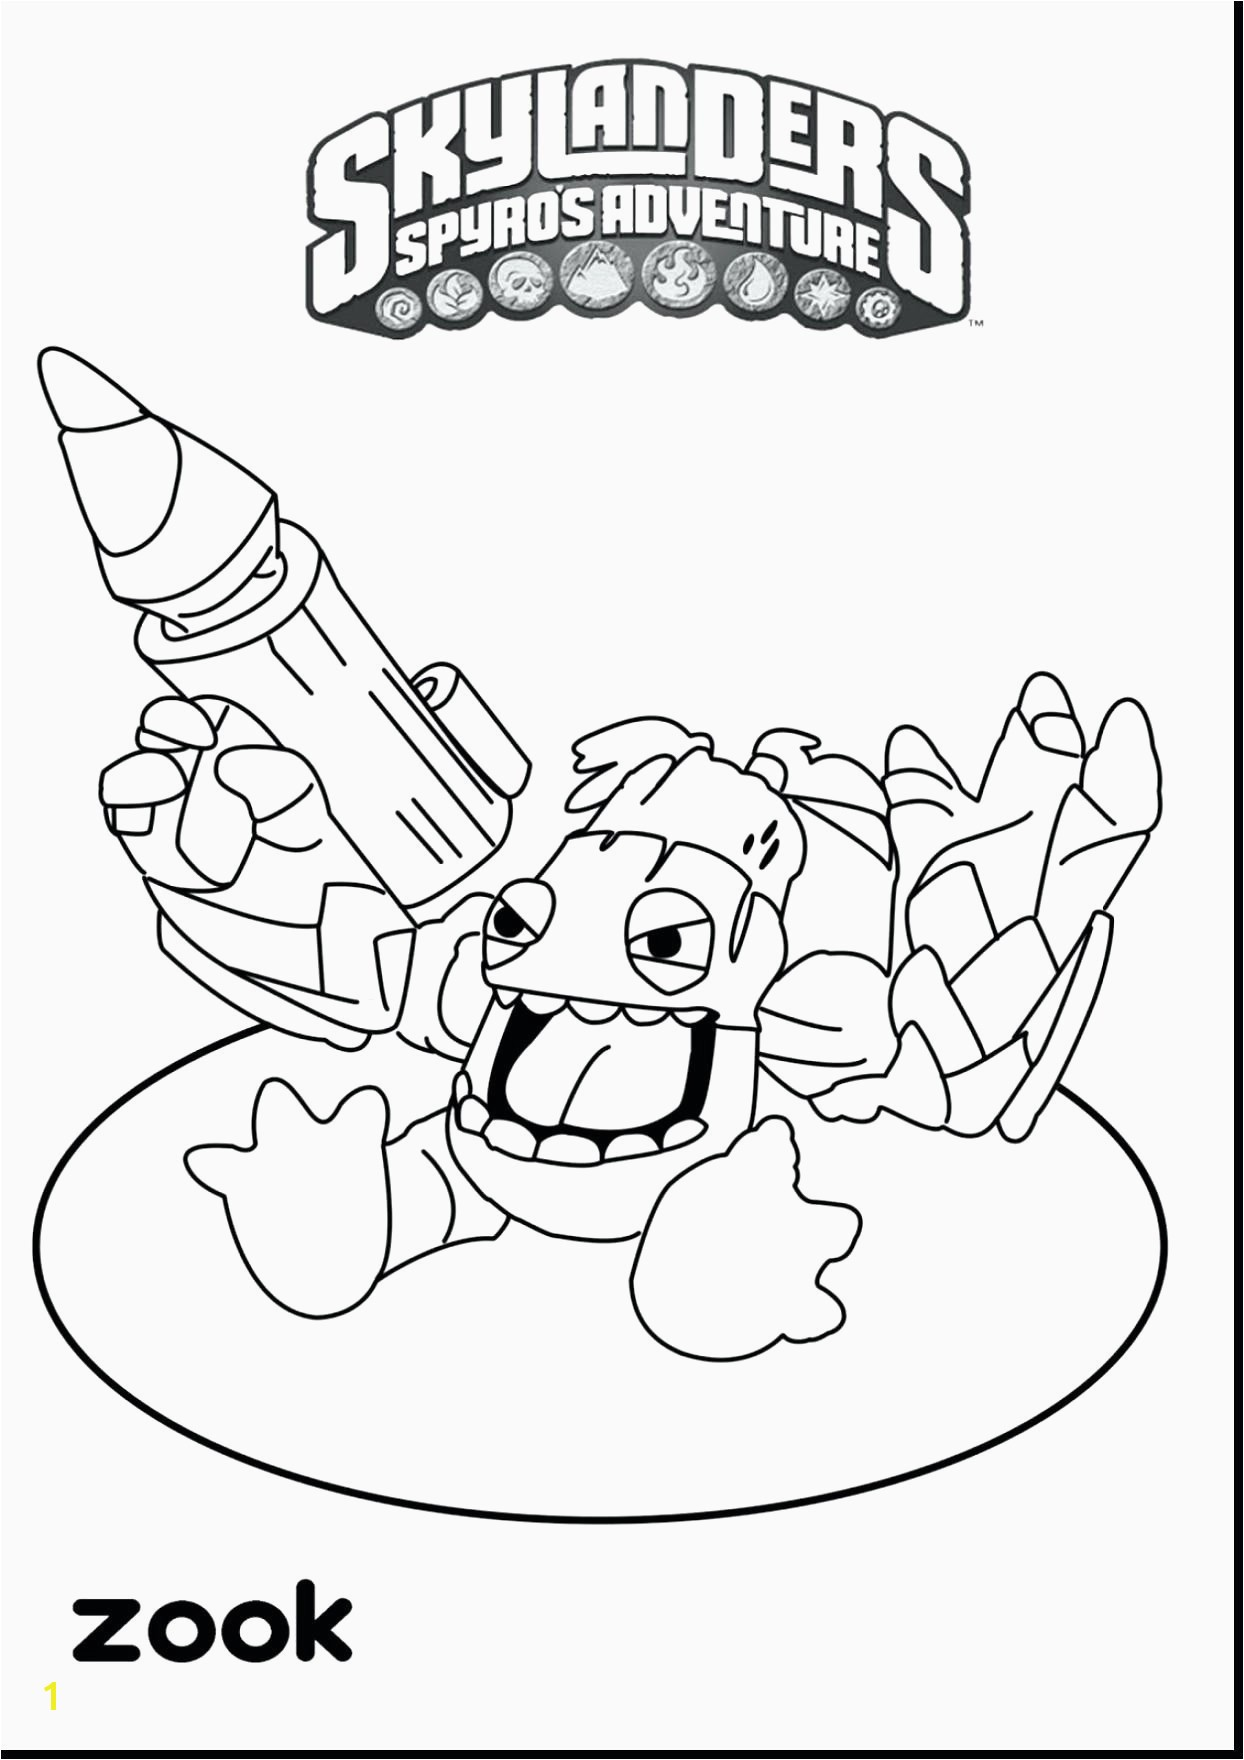 Awesome child coloring sheet Free 7k Cool Coloring Page Inspirational Witch Coloring Pages New Crayola